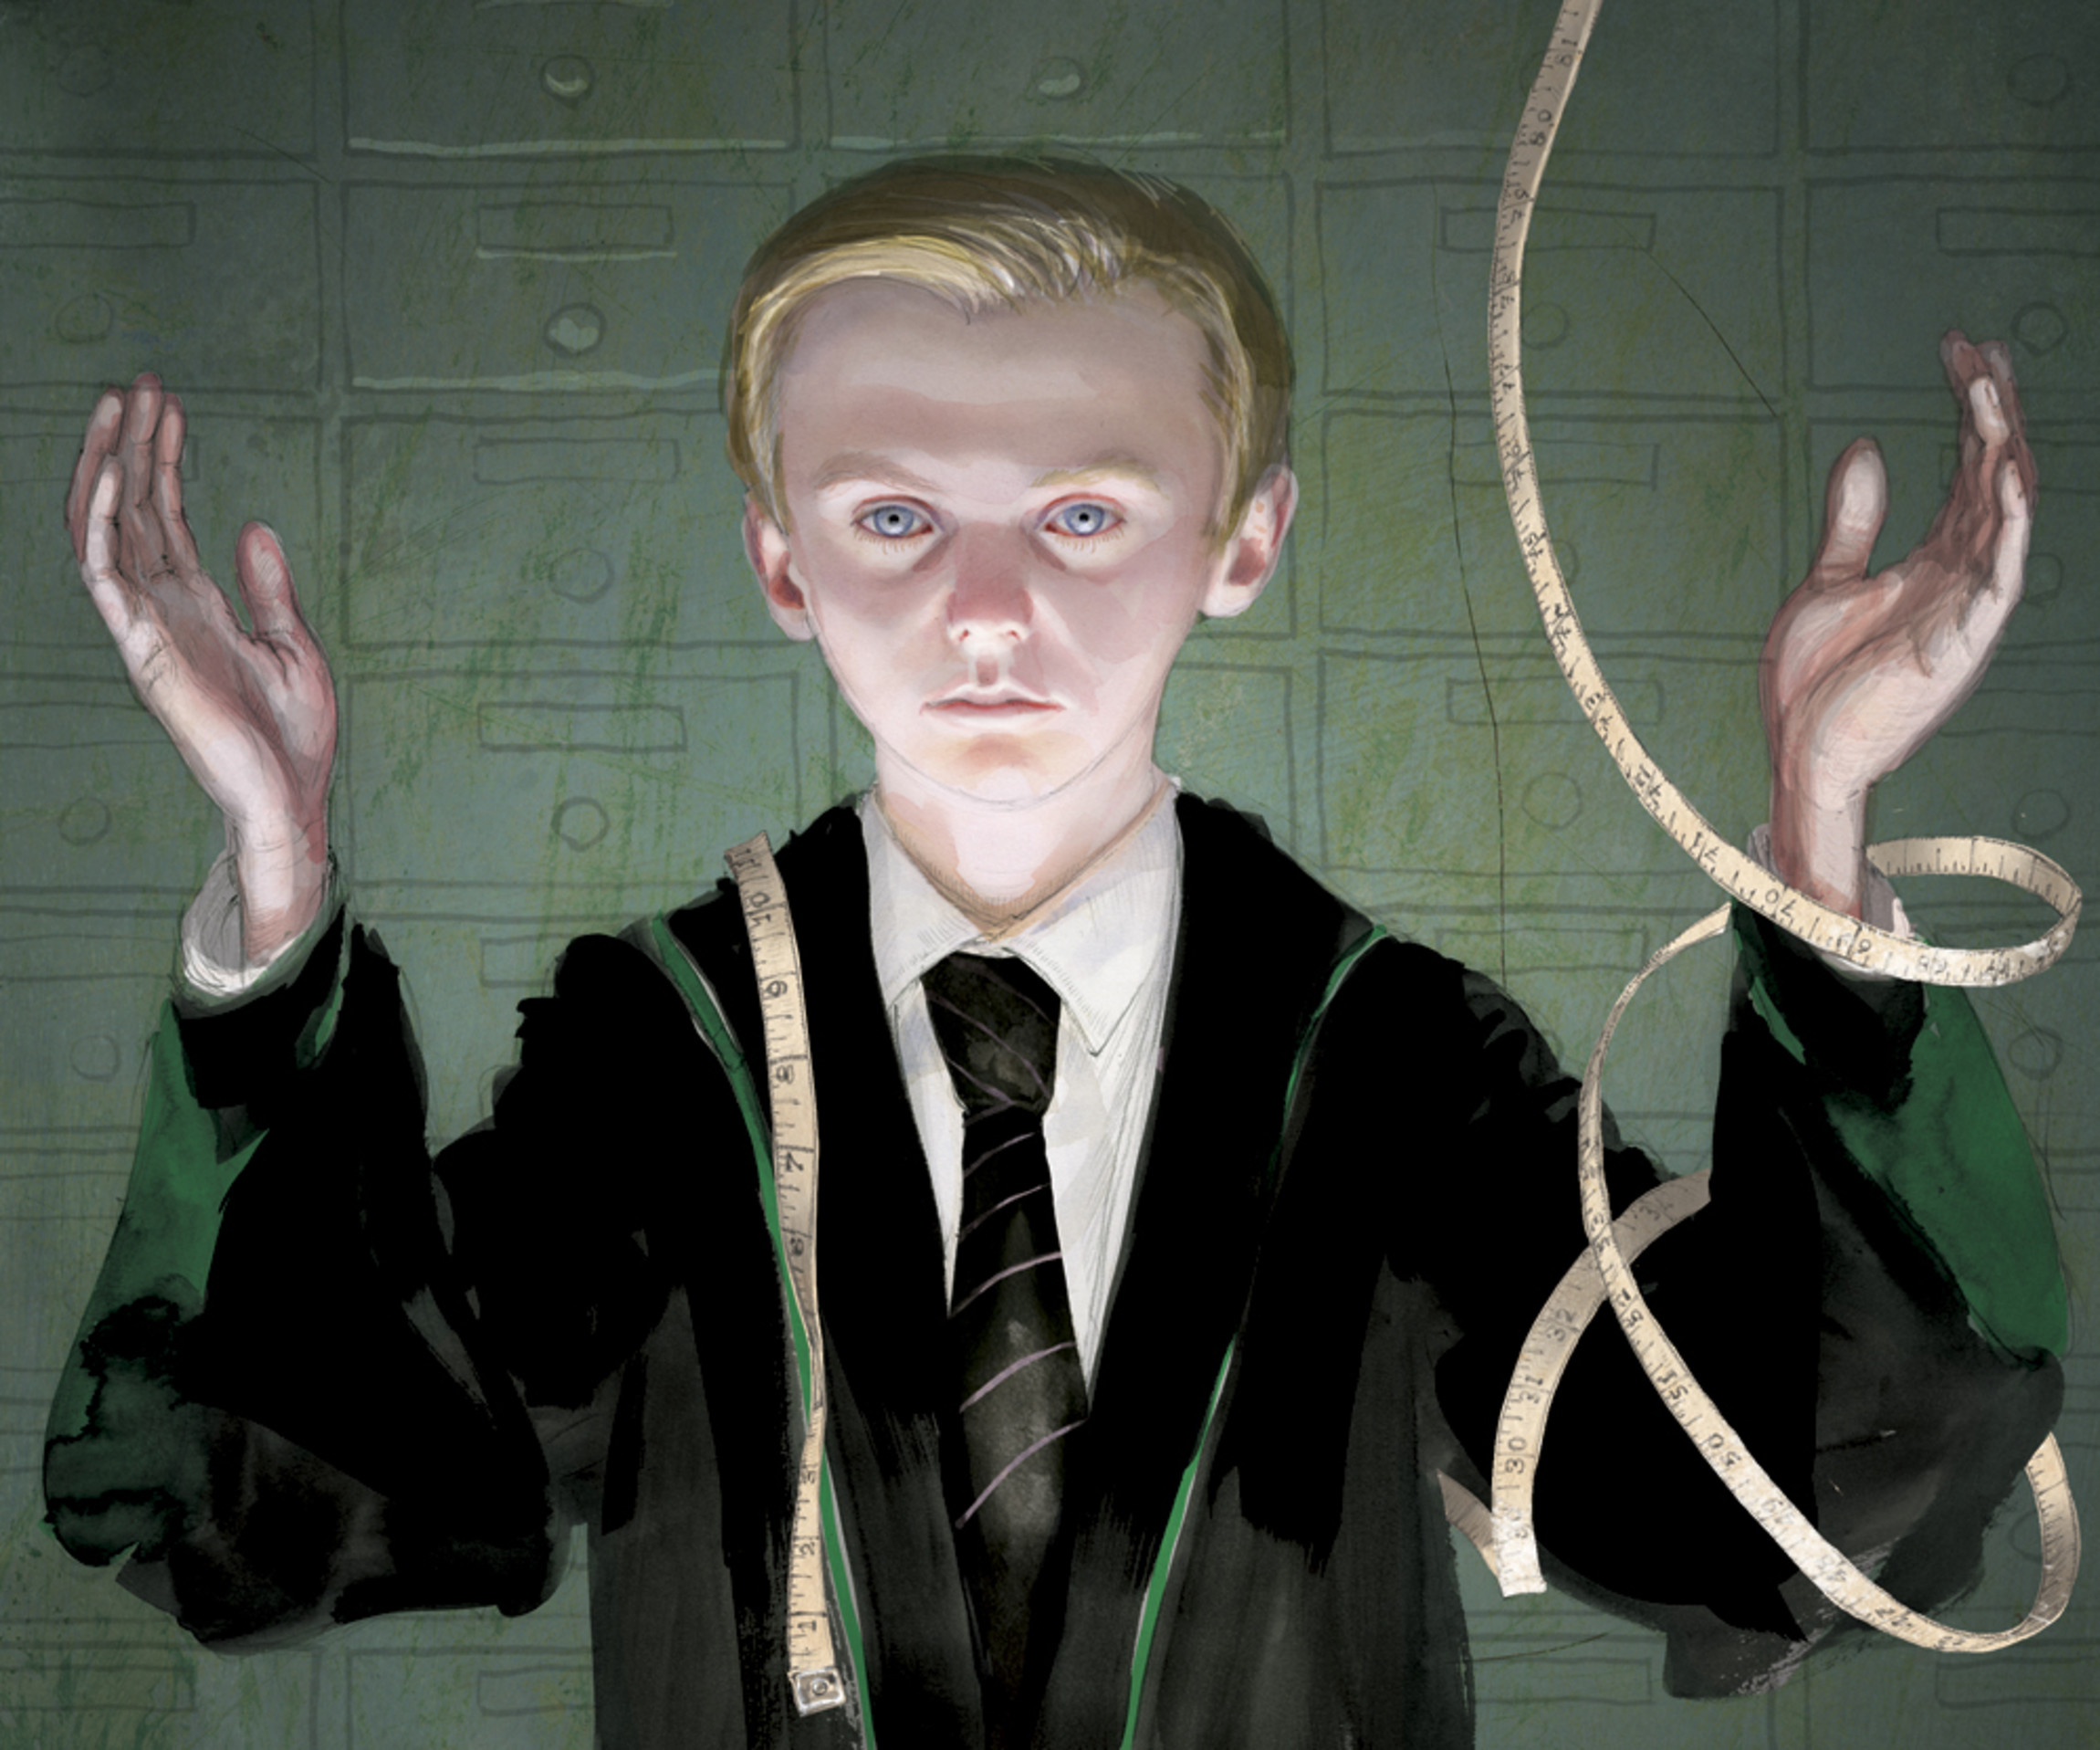 Harry potter gets into jk rowlings freaky dreams new picture